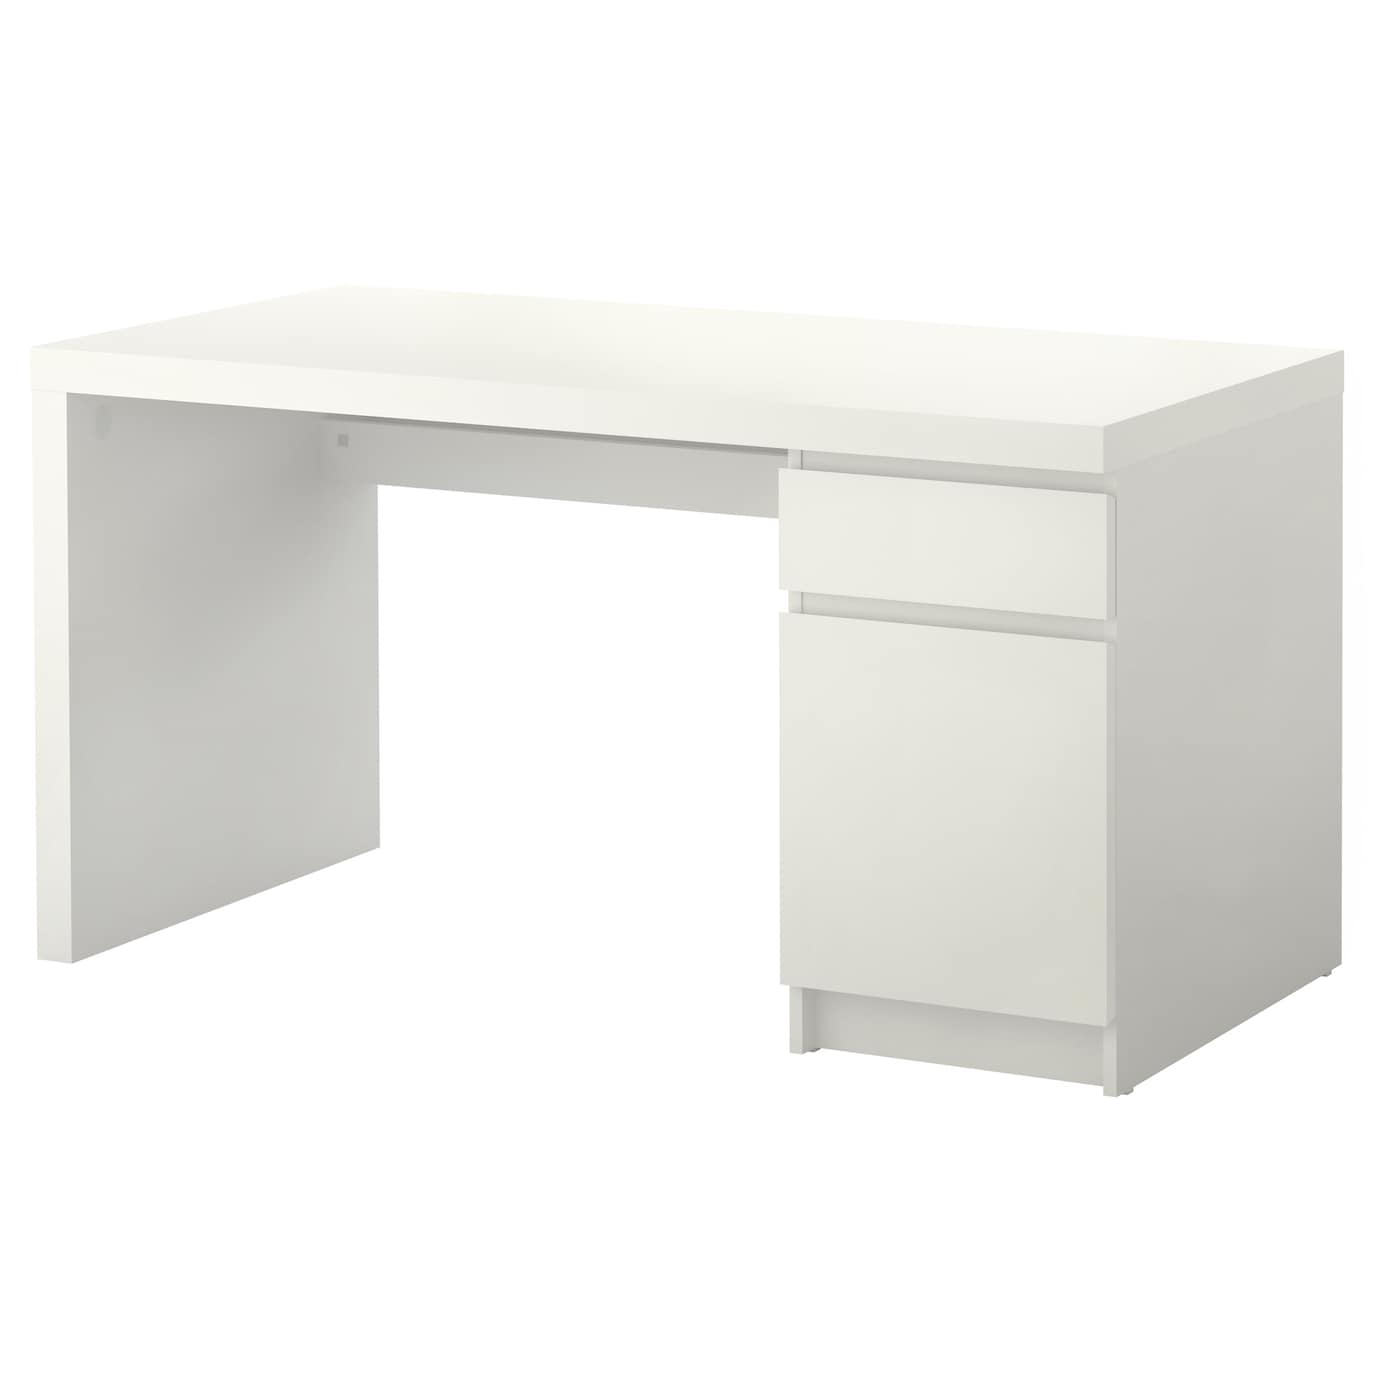 malm desk white 140 x 65 cm ikea. Black Bedroom Furniture Sets. Home Design Ideas